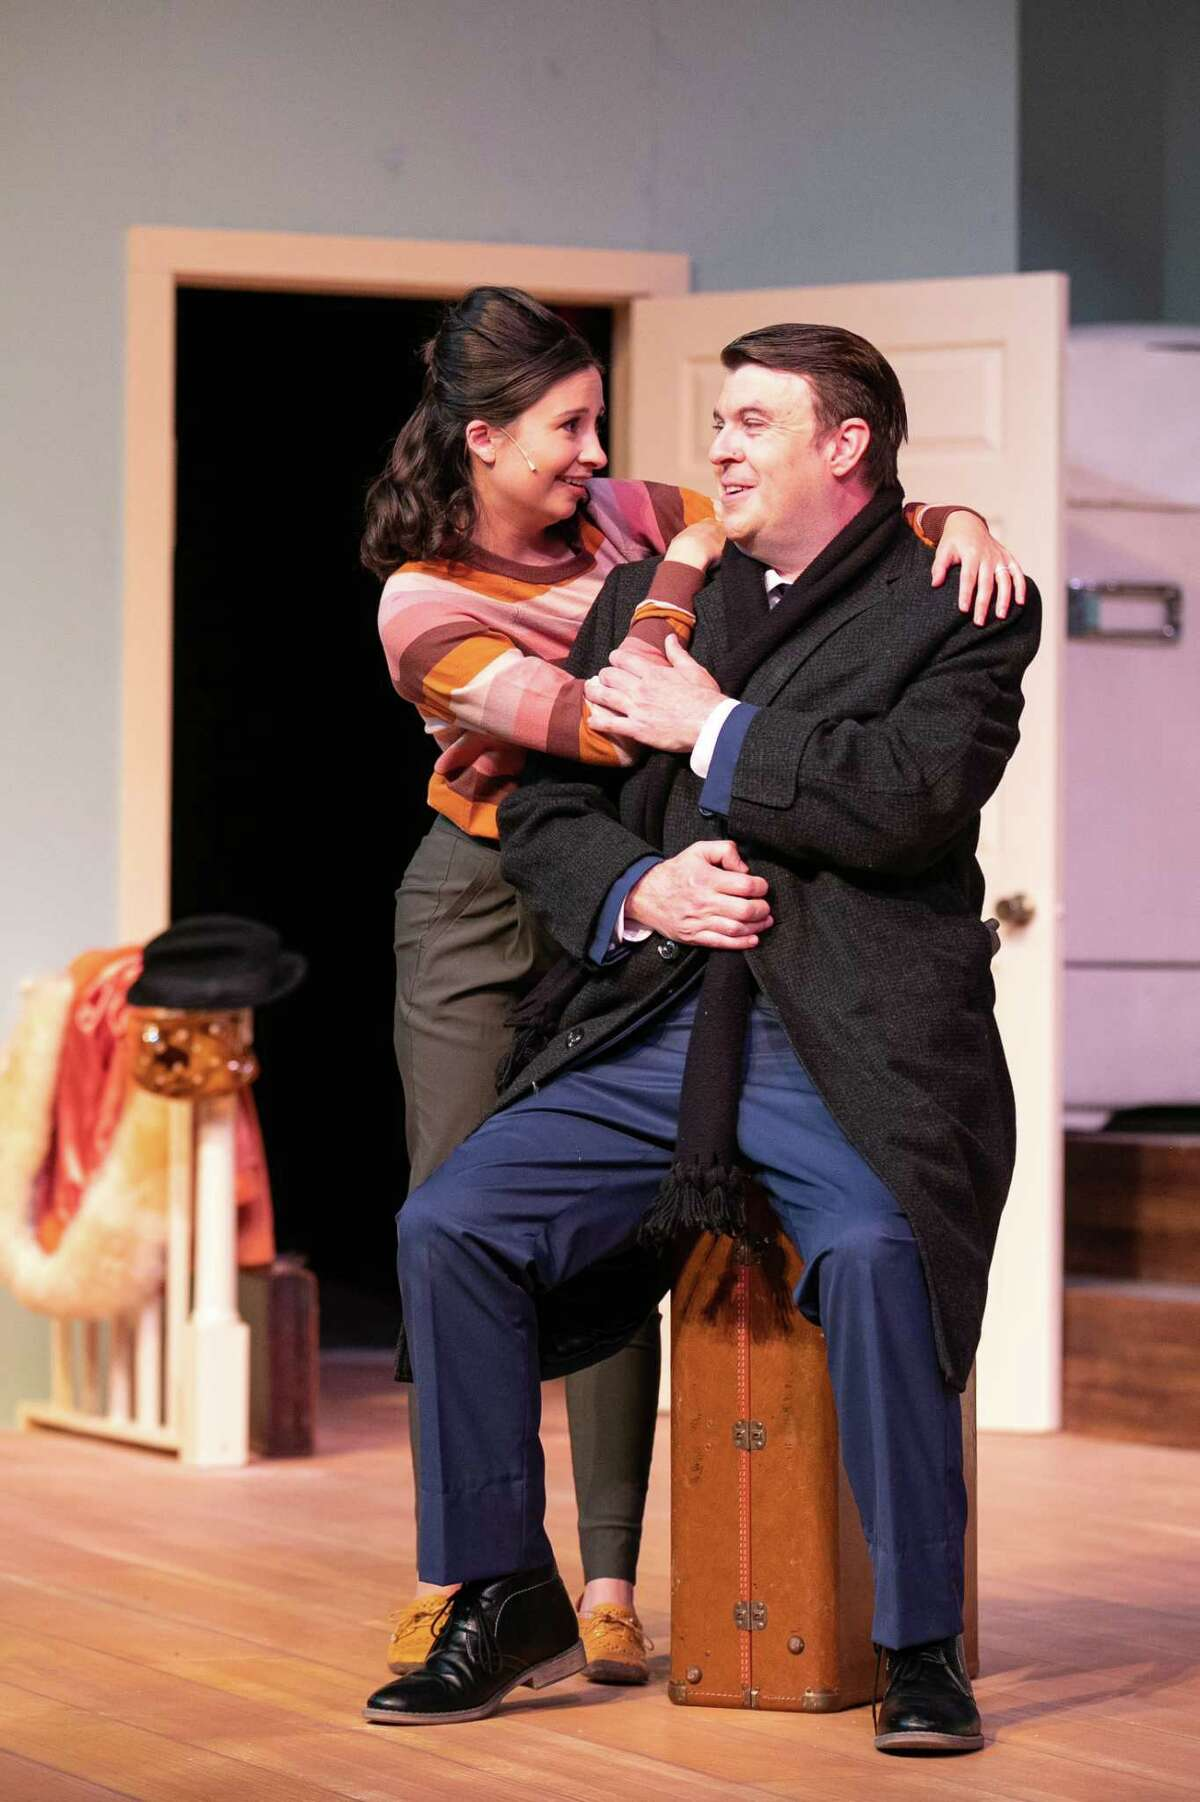 """Newlyweds Corie (Sarah Turner) and Paul (Kevin Leoffler) sit in their new, unfurnished, fifth floor apartment during dress rehearsal for Midland Community Theater?•s ?'Barefoot In The Park?"""" October 5, 2021 at MCT. MANDATORY CREDIT: The Oilfield Photographer, Inc."""